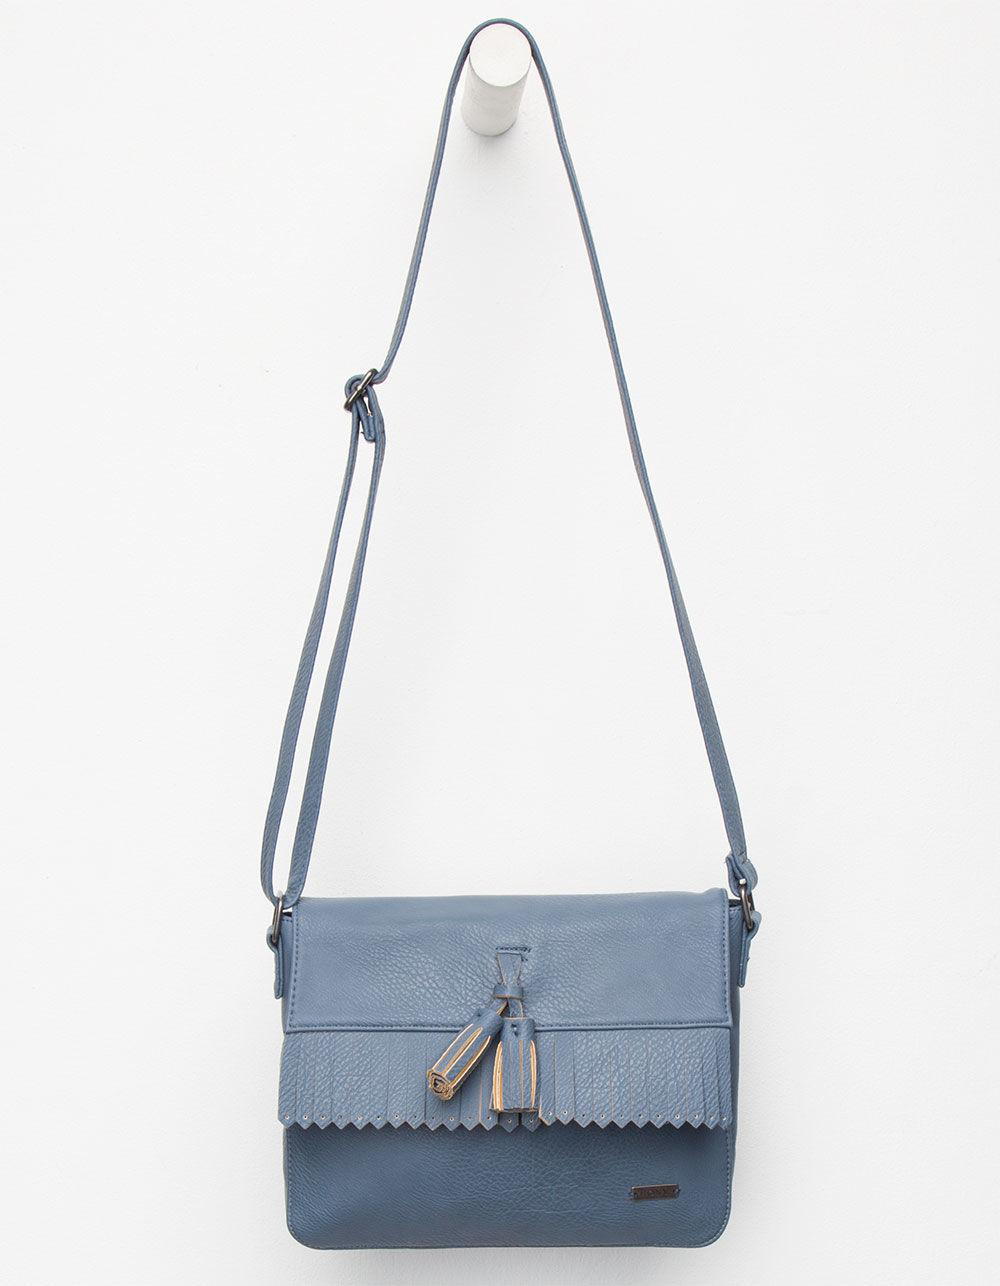 8071a1496d Lyst - Roxy Botanic Quilts Cross Body Bag in Blue